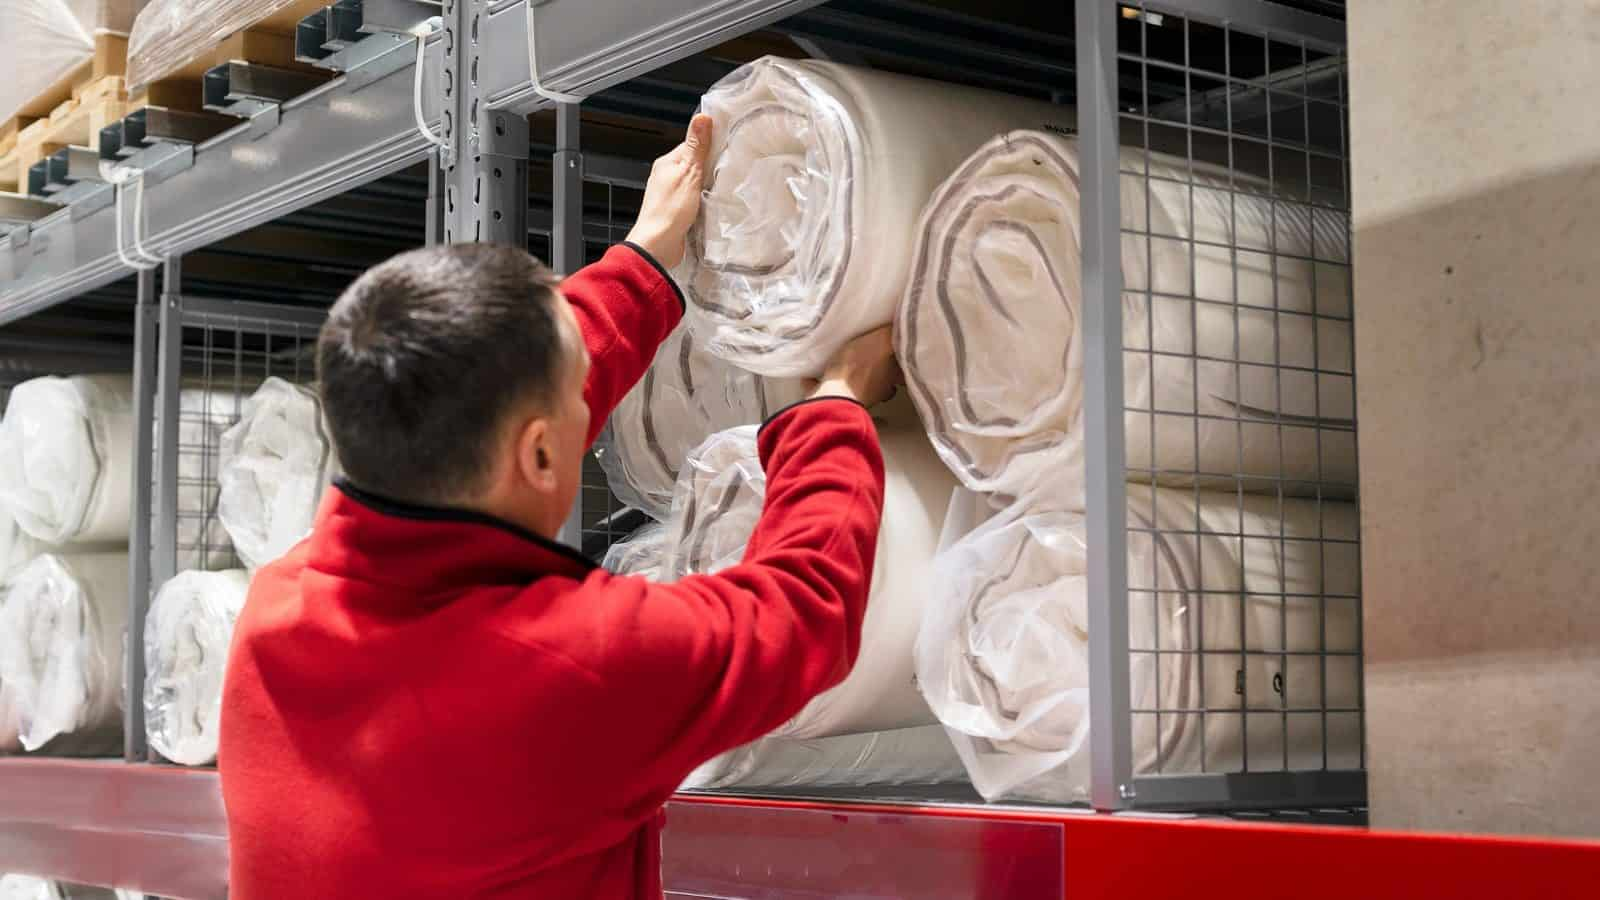 How To Store A Mattress Topper: Step By Step Guide   Terry Cralle